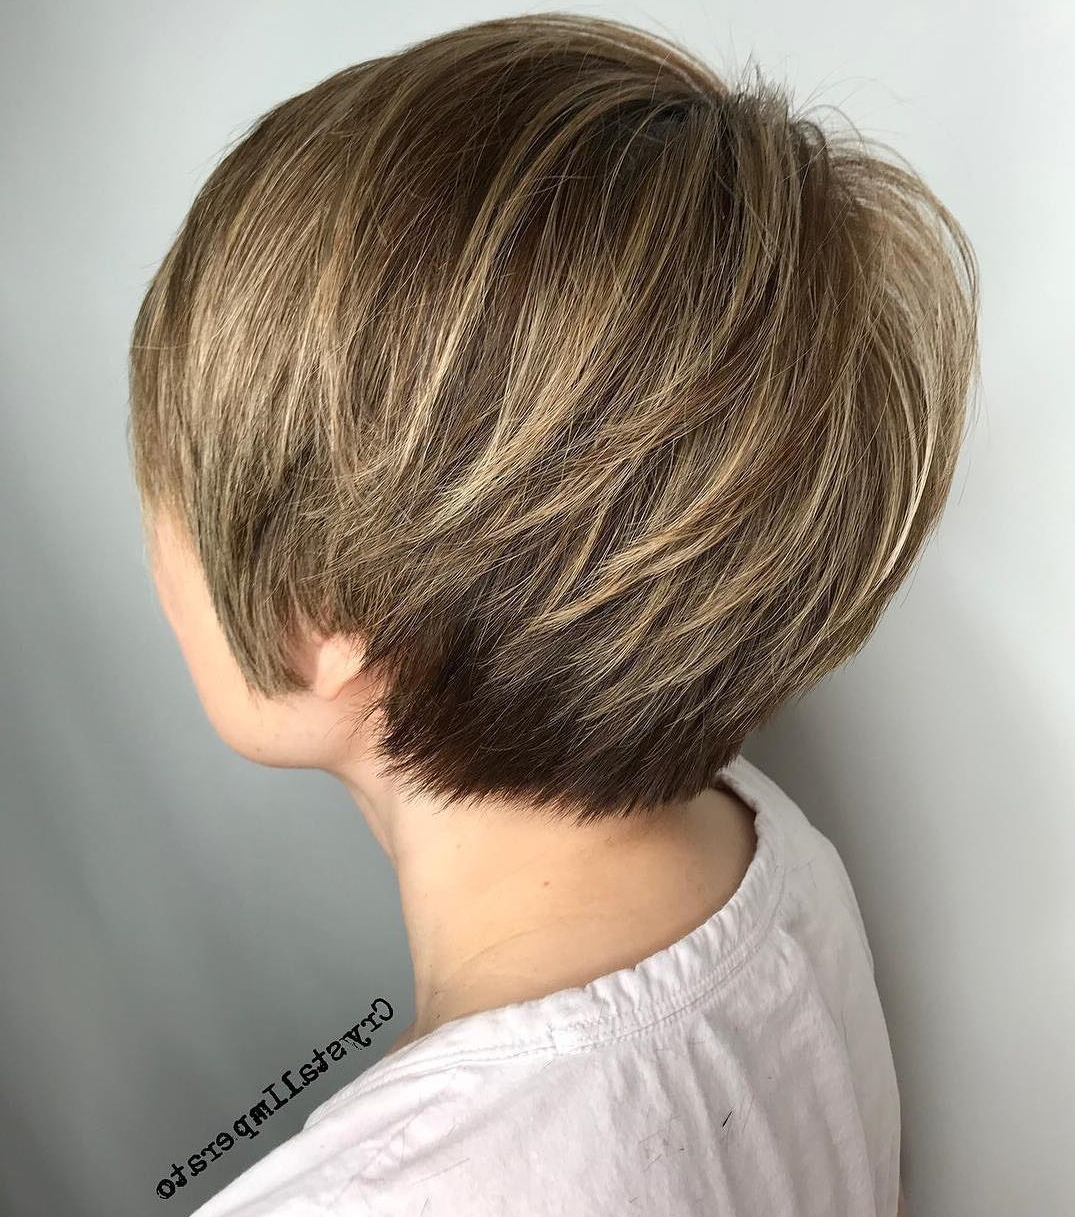 50 Hottest Pixie Cut Hairstyles In 2019 With Regard To Curly Pixie Haircuts With Highlights (View 8 of 20)